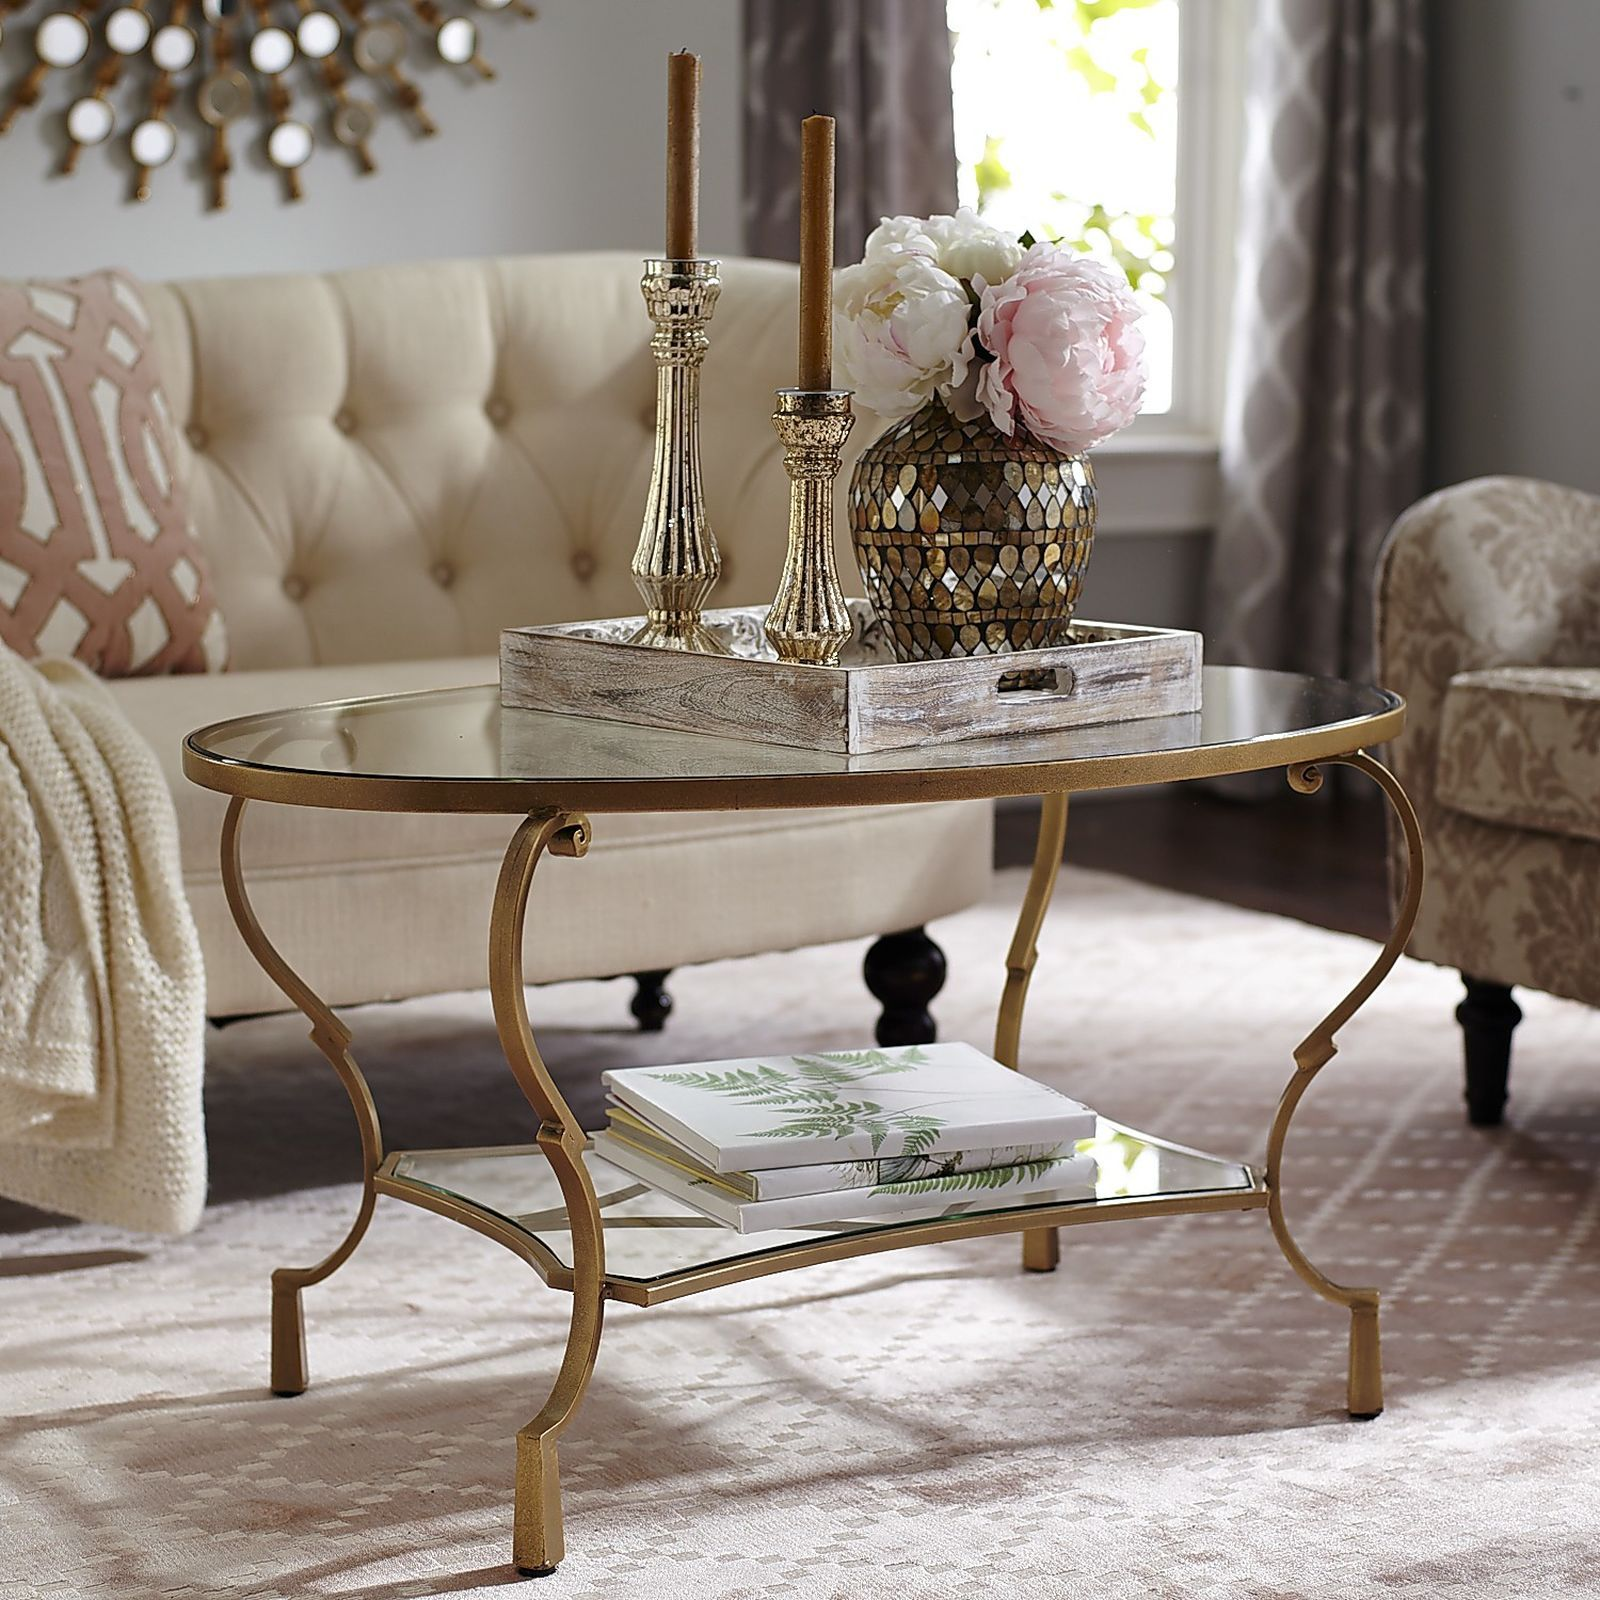 Chasca glass top gold oval coffee table oval glass